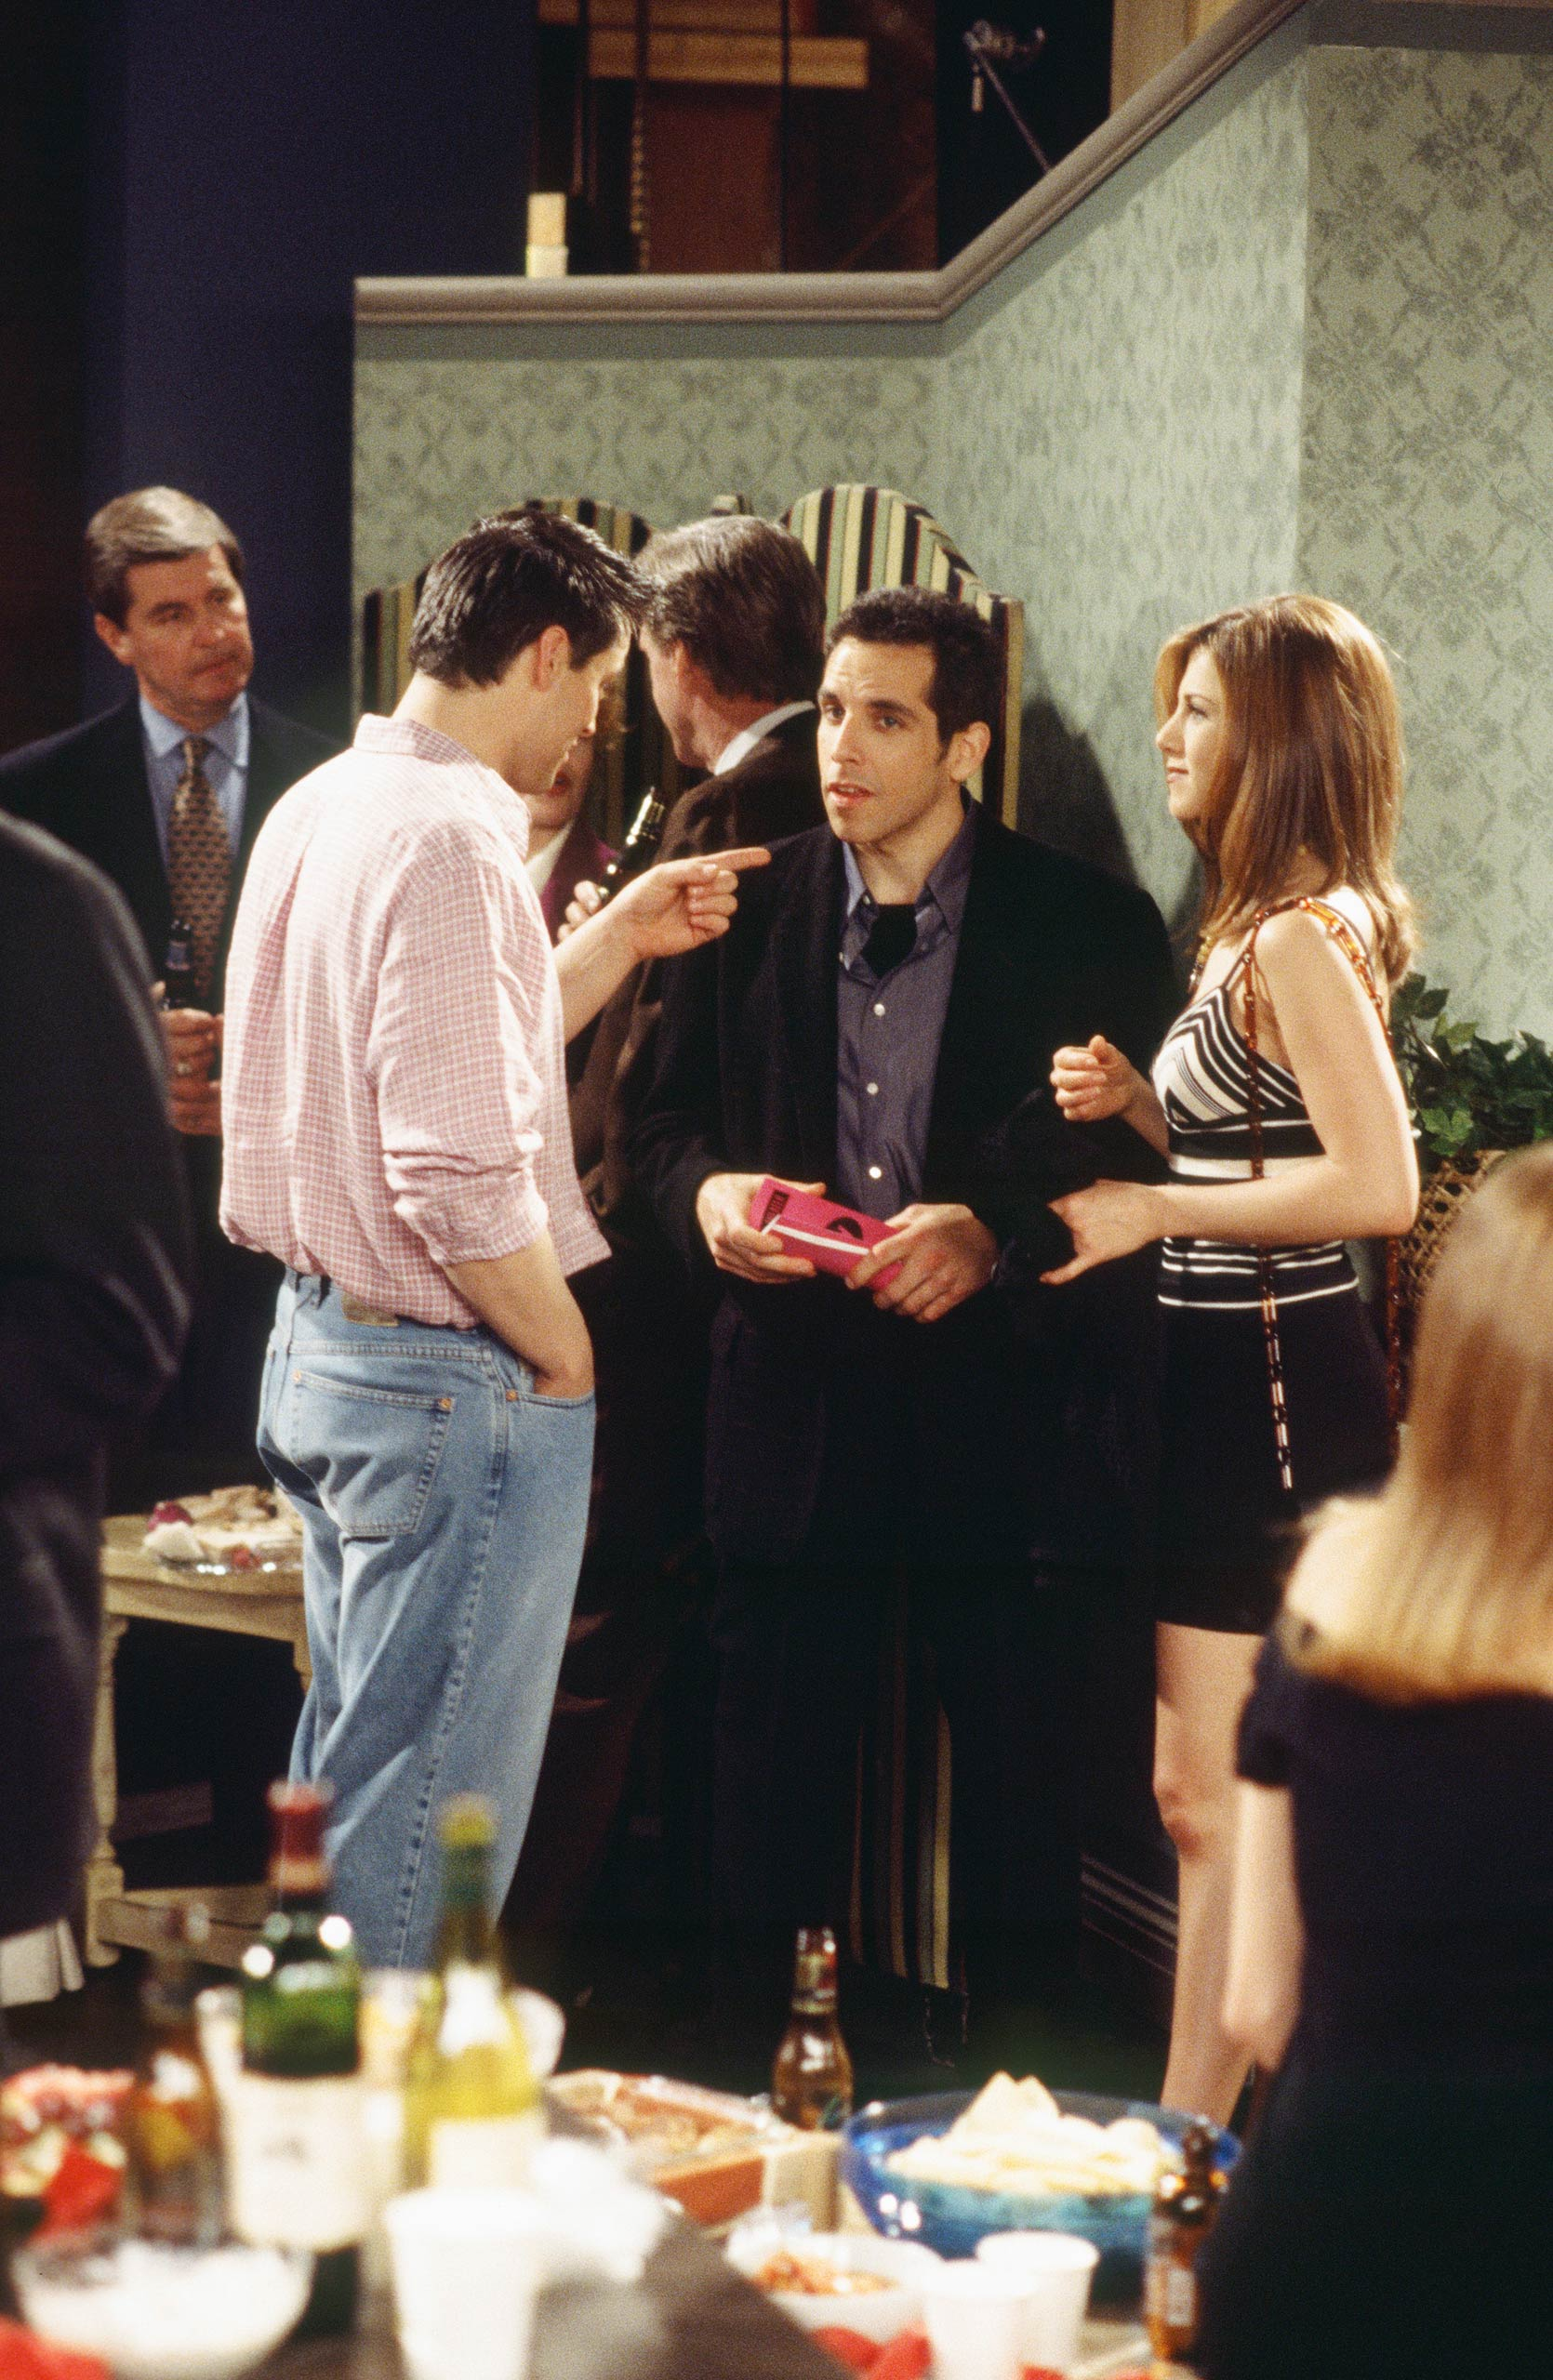 <strong>Ben Stiller</strong> – Ben Stiller appeared as Rachel's date who angrily yells at everyone